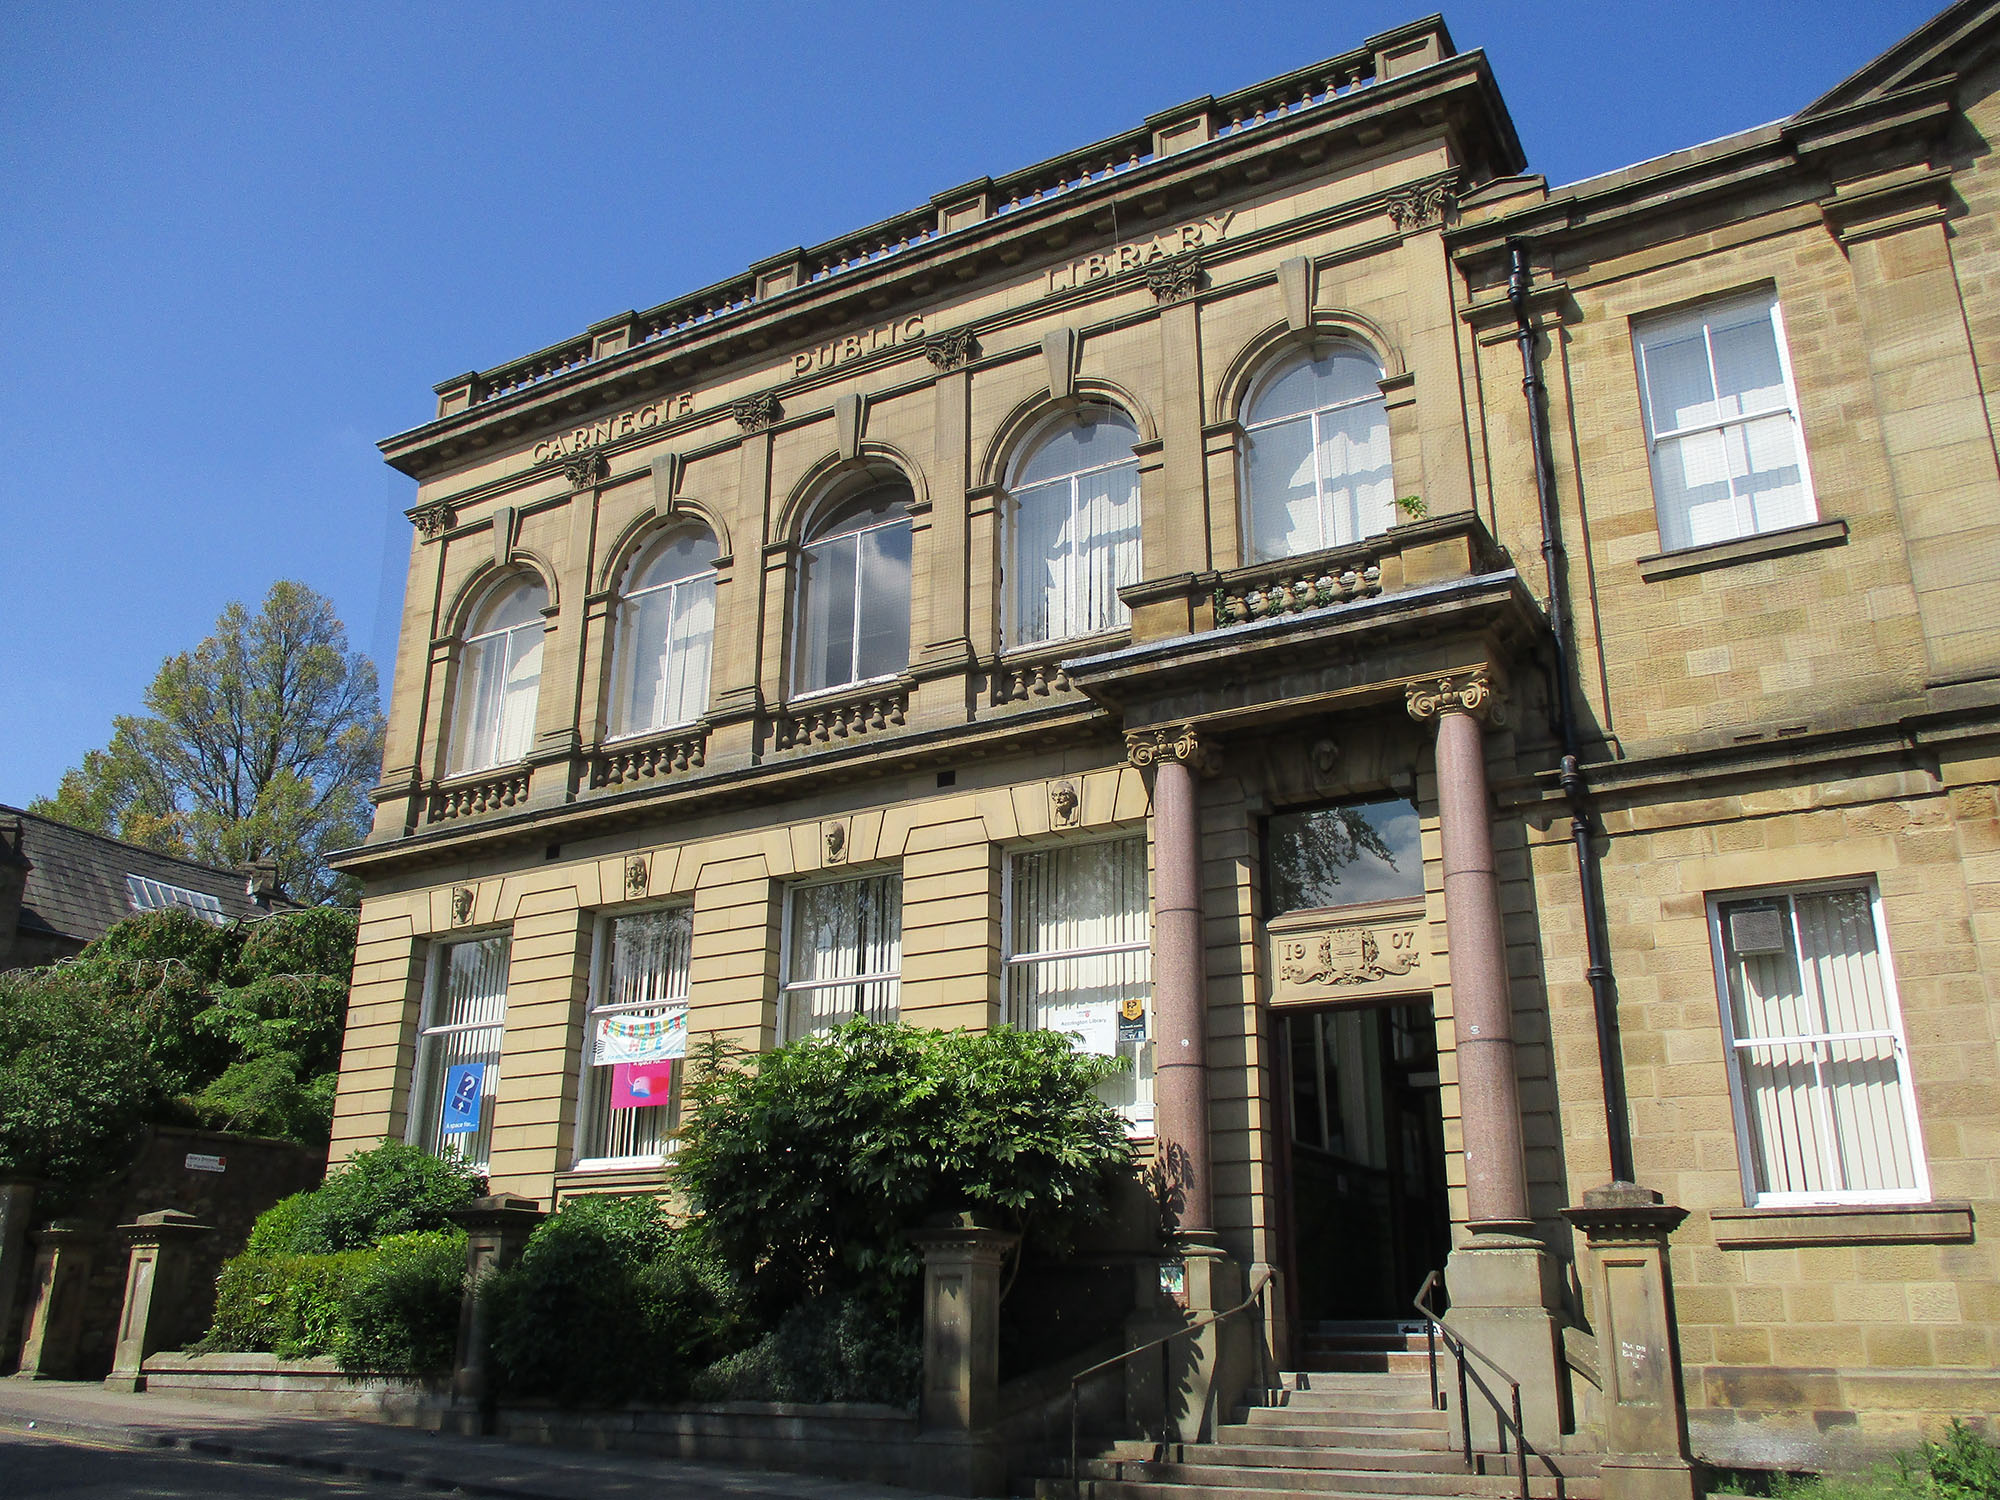 2.-ACCRINGTON-LIBRARY-FUNDED-BY-ANDREW-CARNEGIE-AND-OPENED-IN-1908.-PHOTO-CREDIT-LANCASHIRE-COUNTY-LIBRARIES